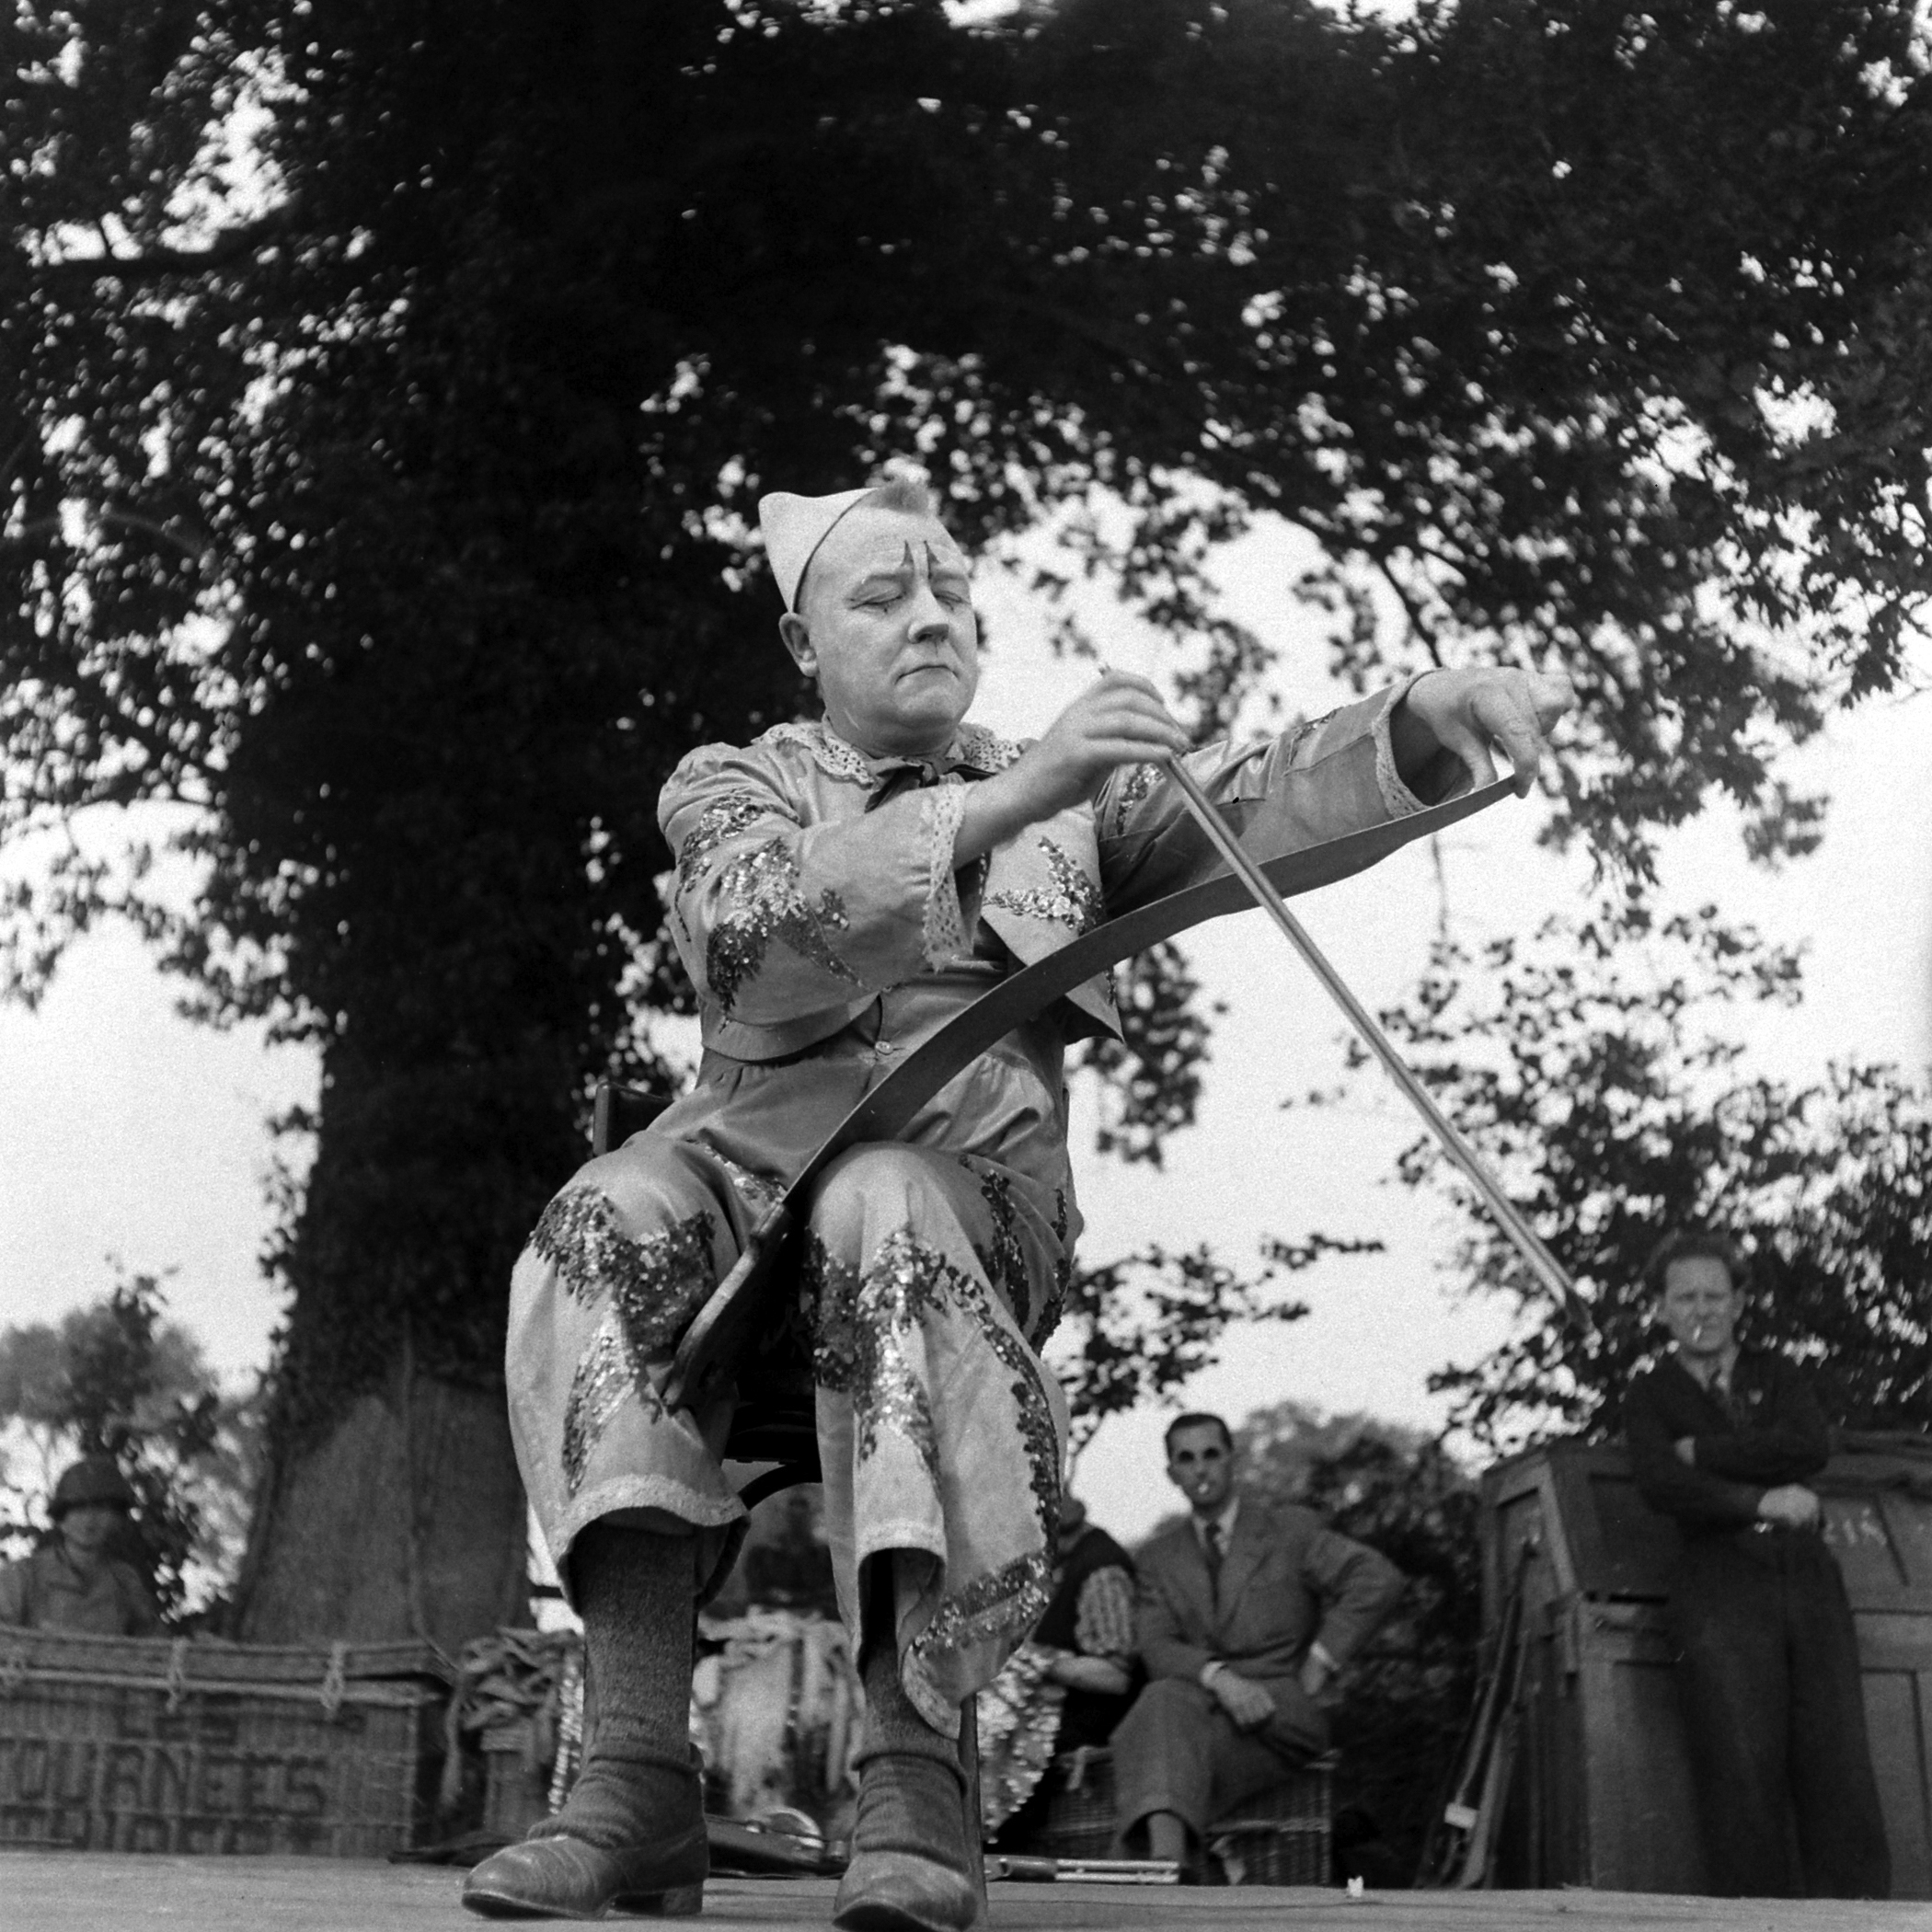 French clown, Danglais, performs in show for U.S. troops after D-Day, Normandy, 1944.